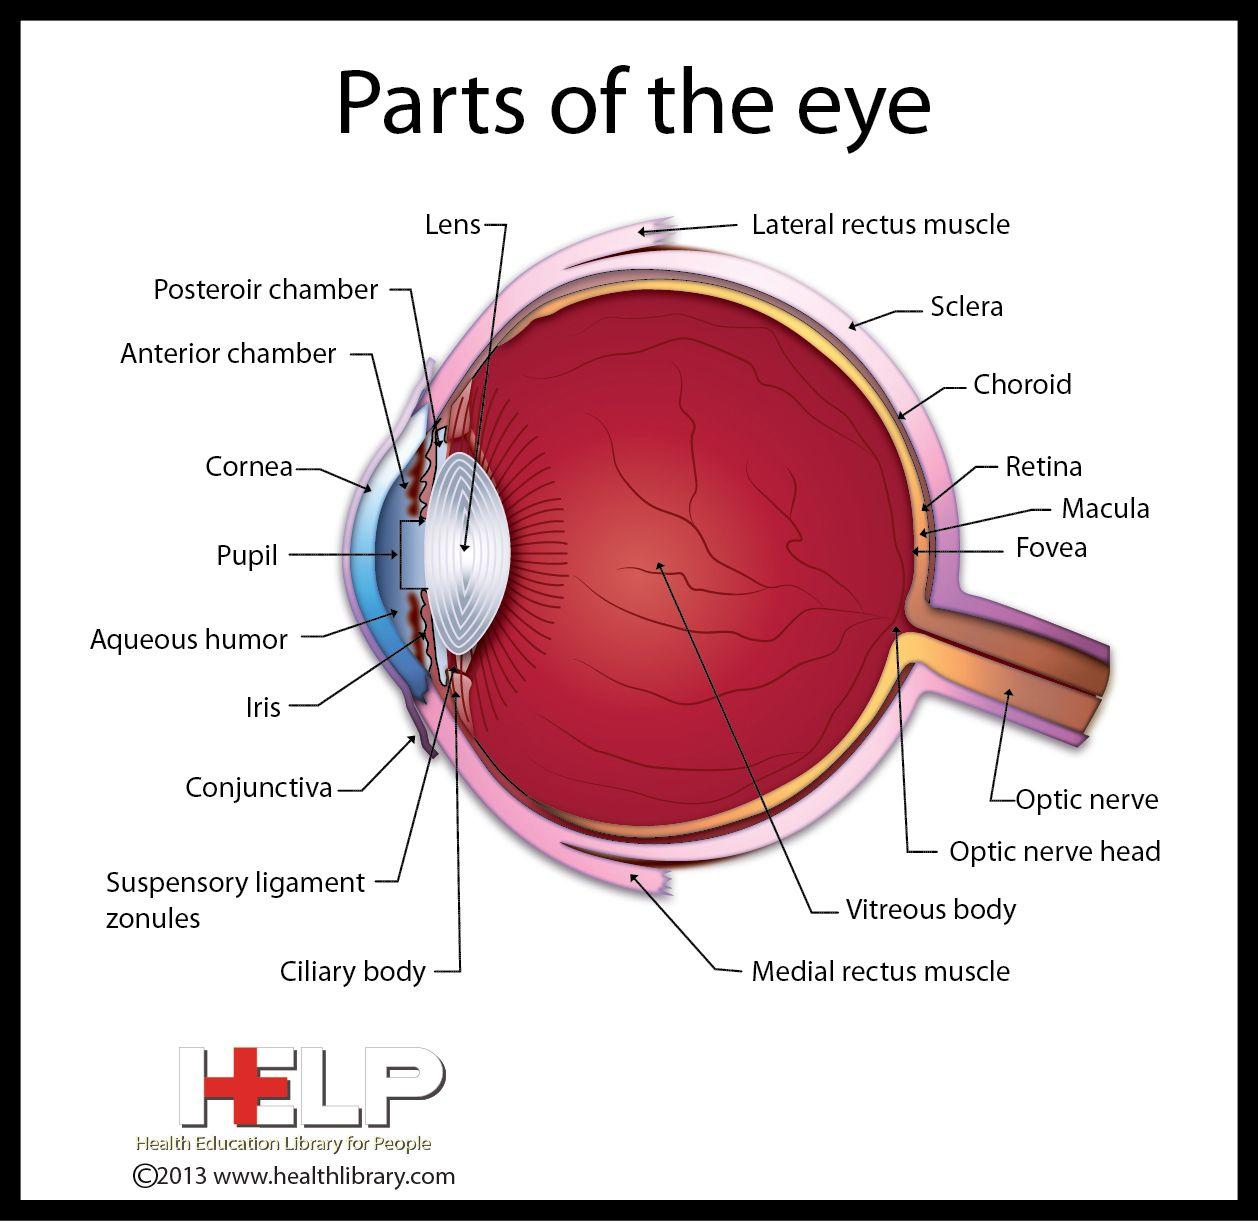 Human Eye Parts Diagram Toyota Land Cruiser Headlight Wiring Of The Only God Could Have Made Such A